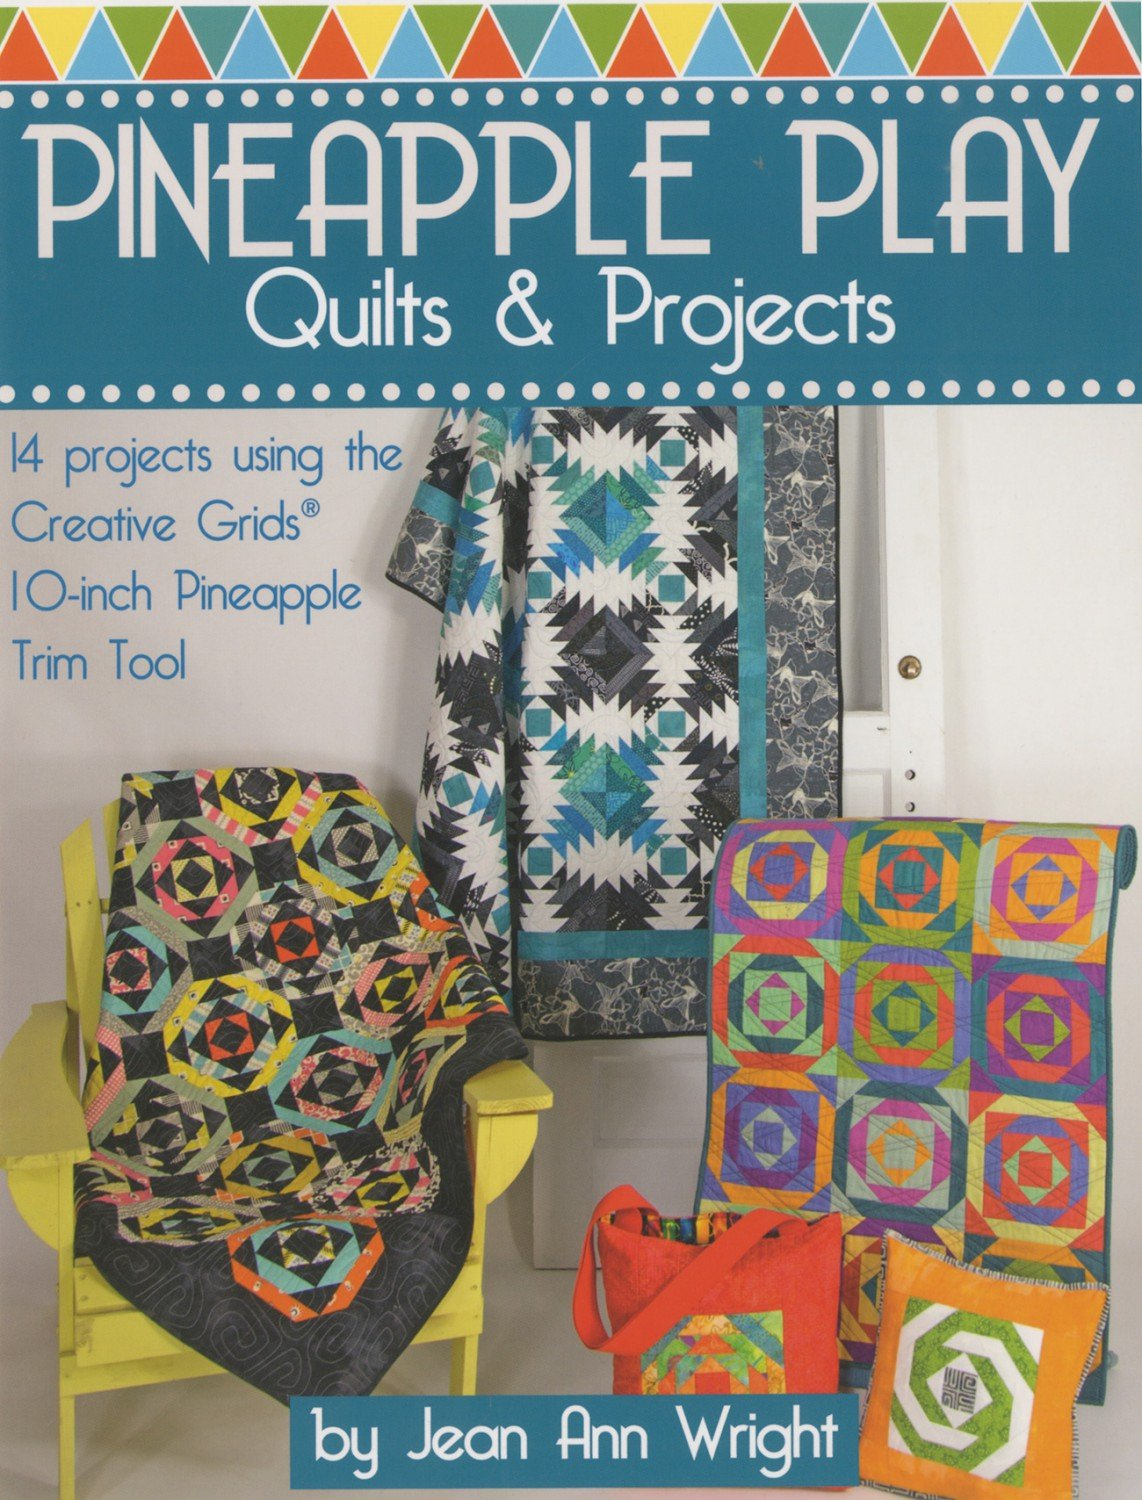 Pineapple Play - Quilts & Projects